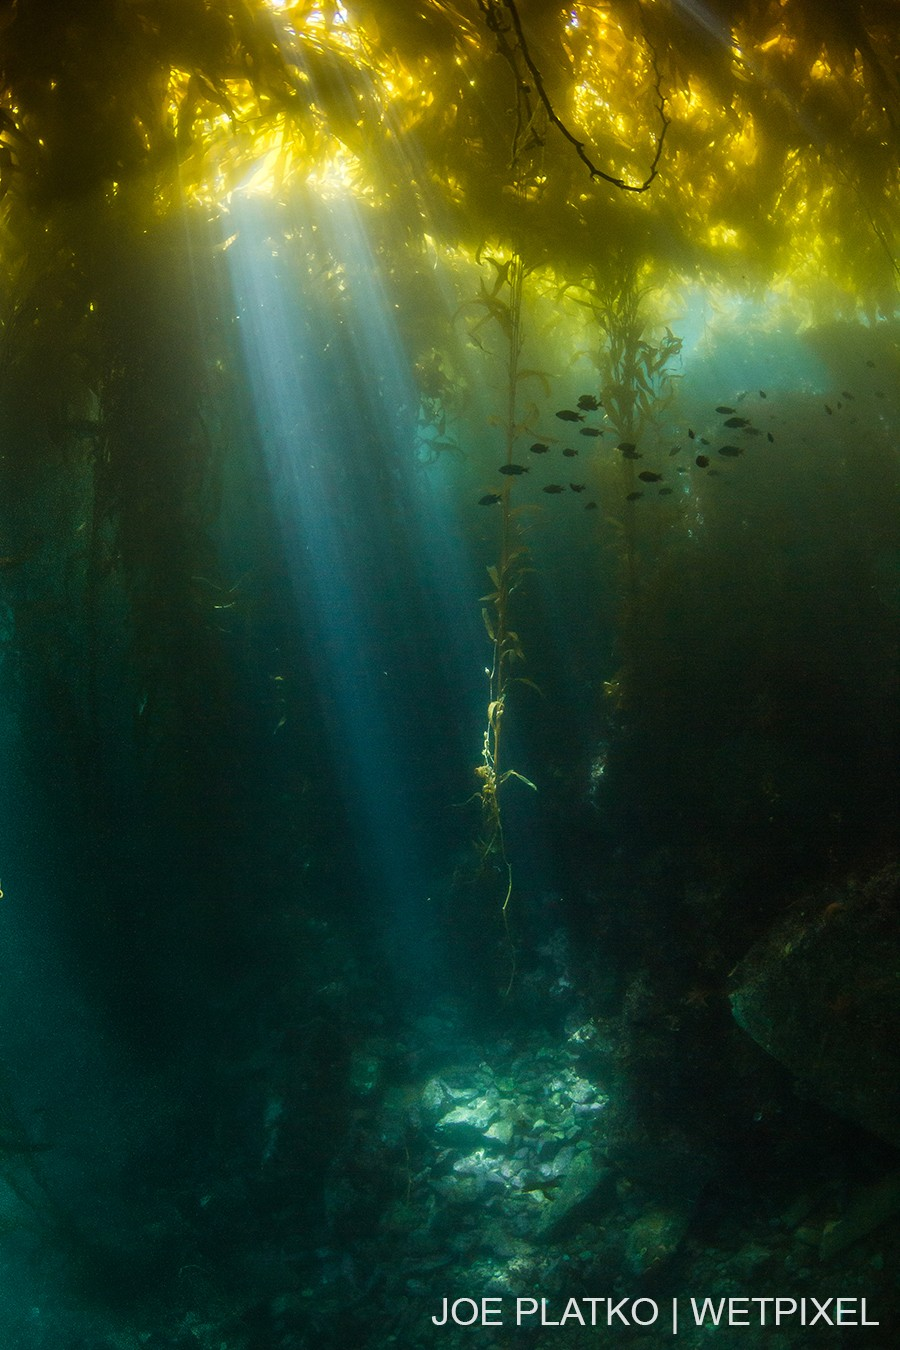 A shaft of light cuts through the kelp canopy, illuminating the rocky floor below.